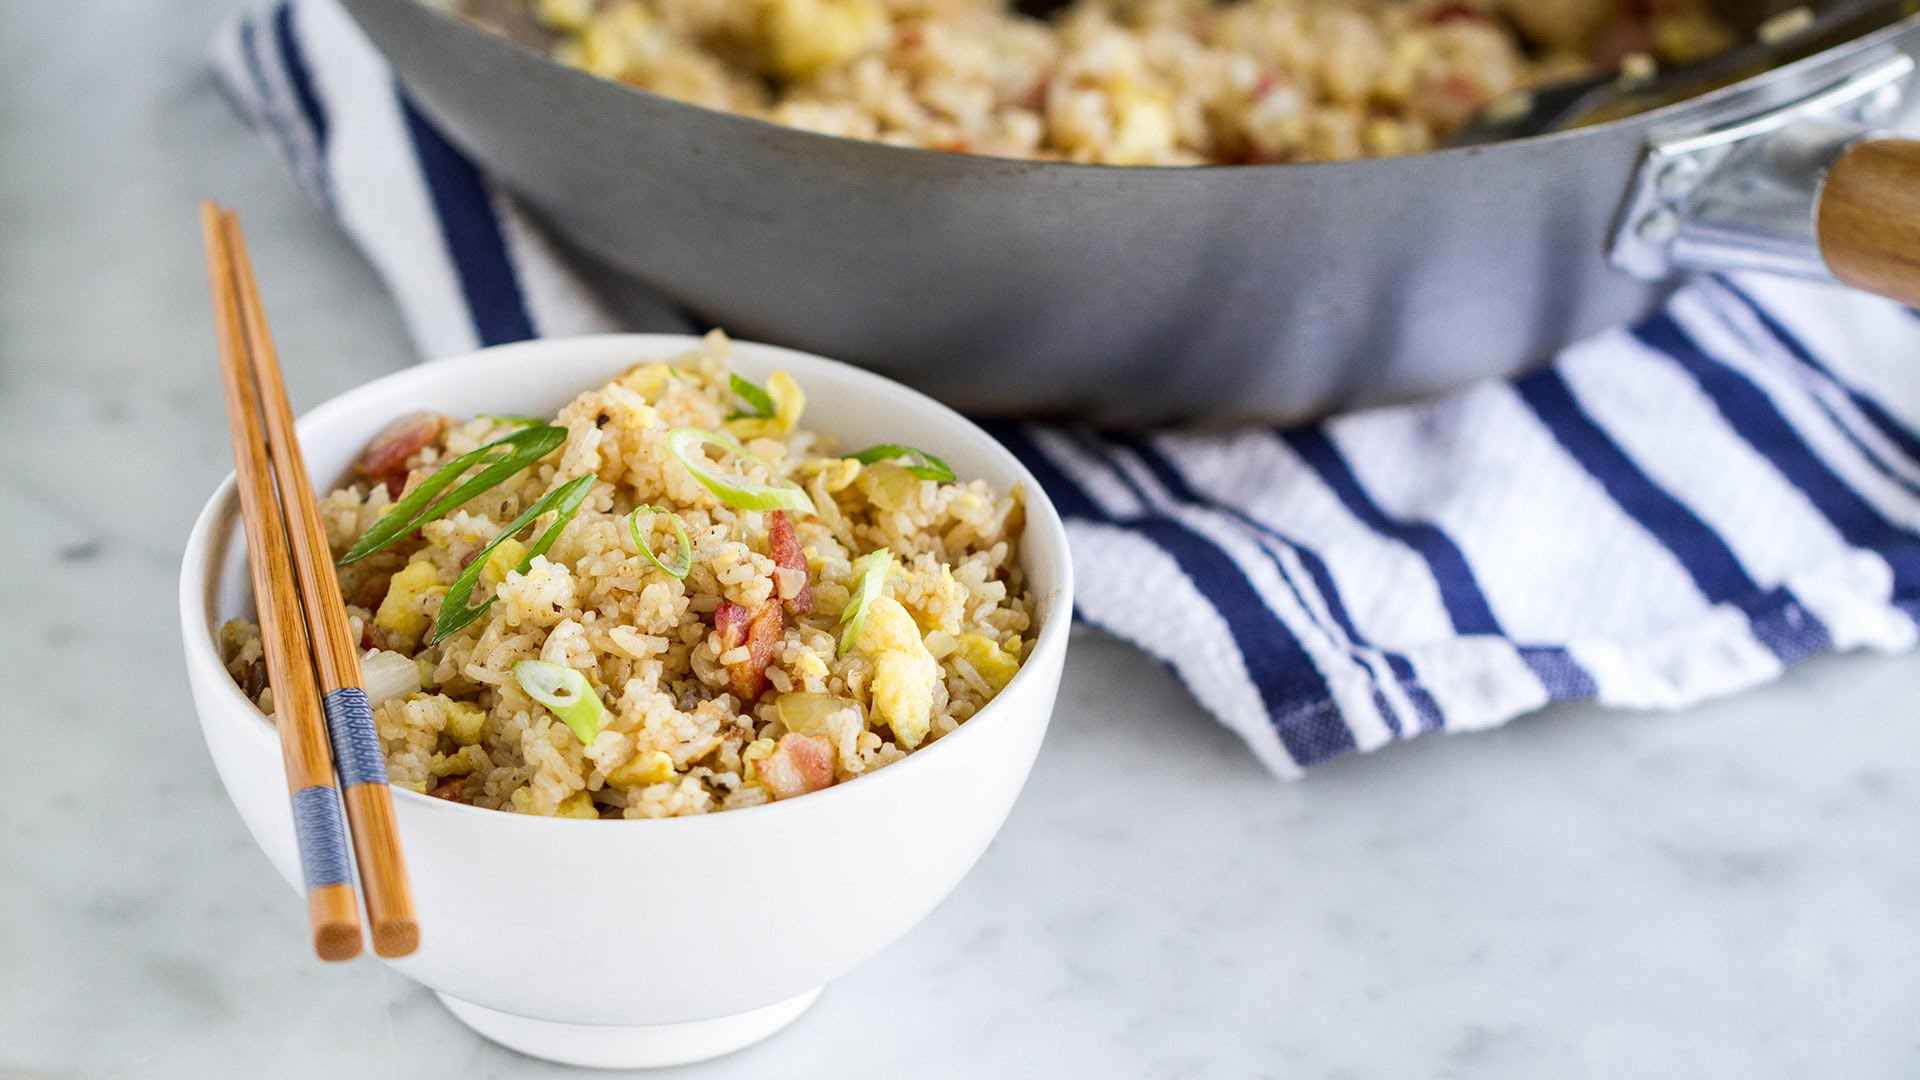 Looking For An Easy Meal? … Try This Bacon And Egg Fried Rice Recipe